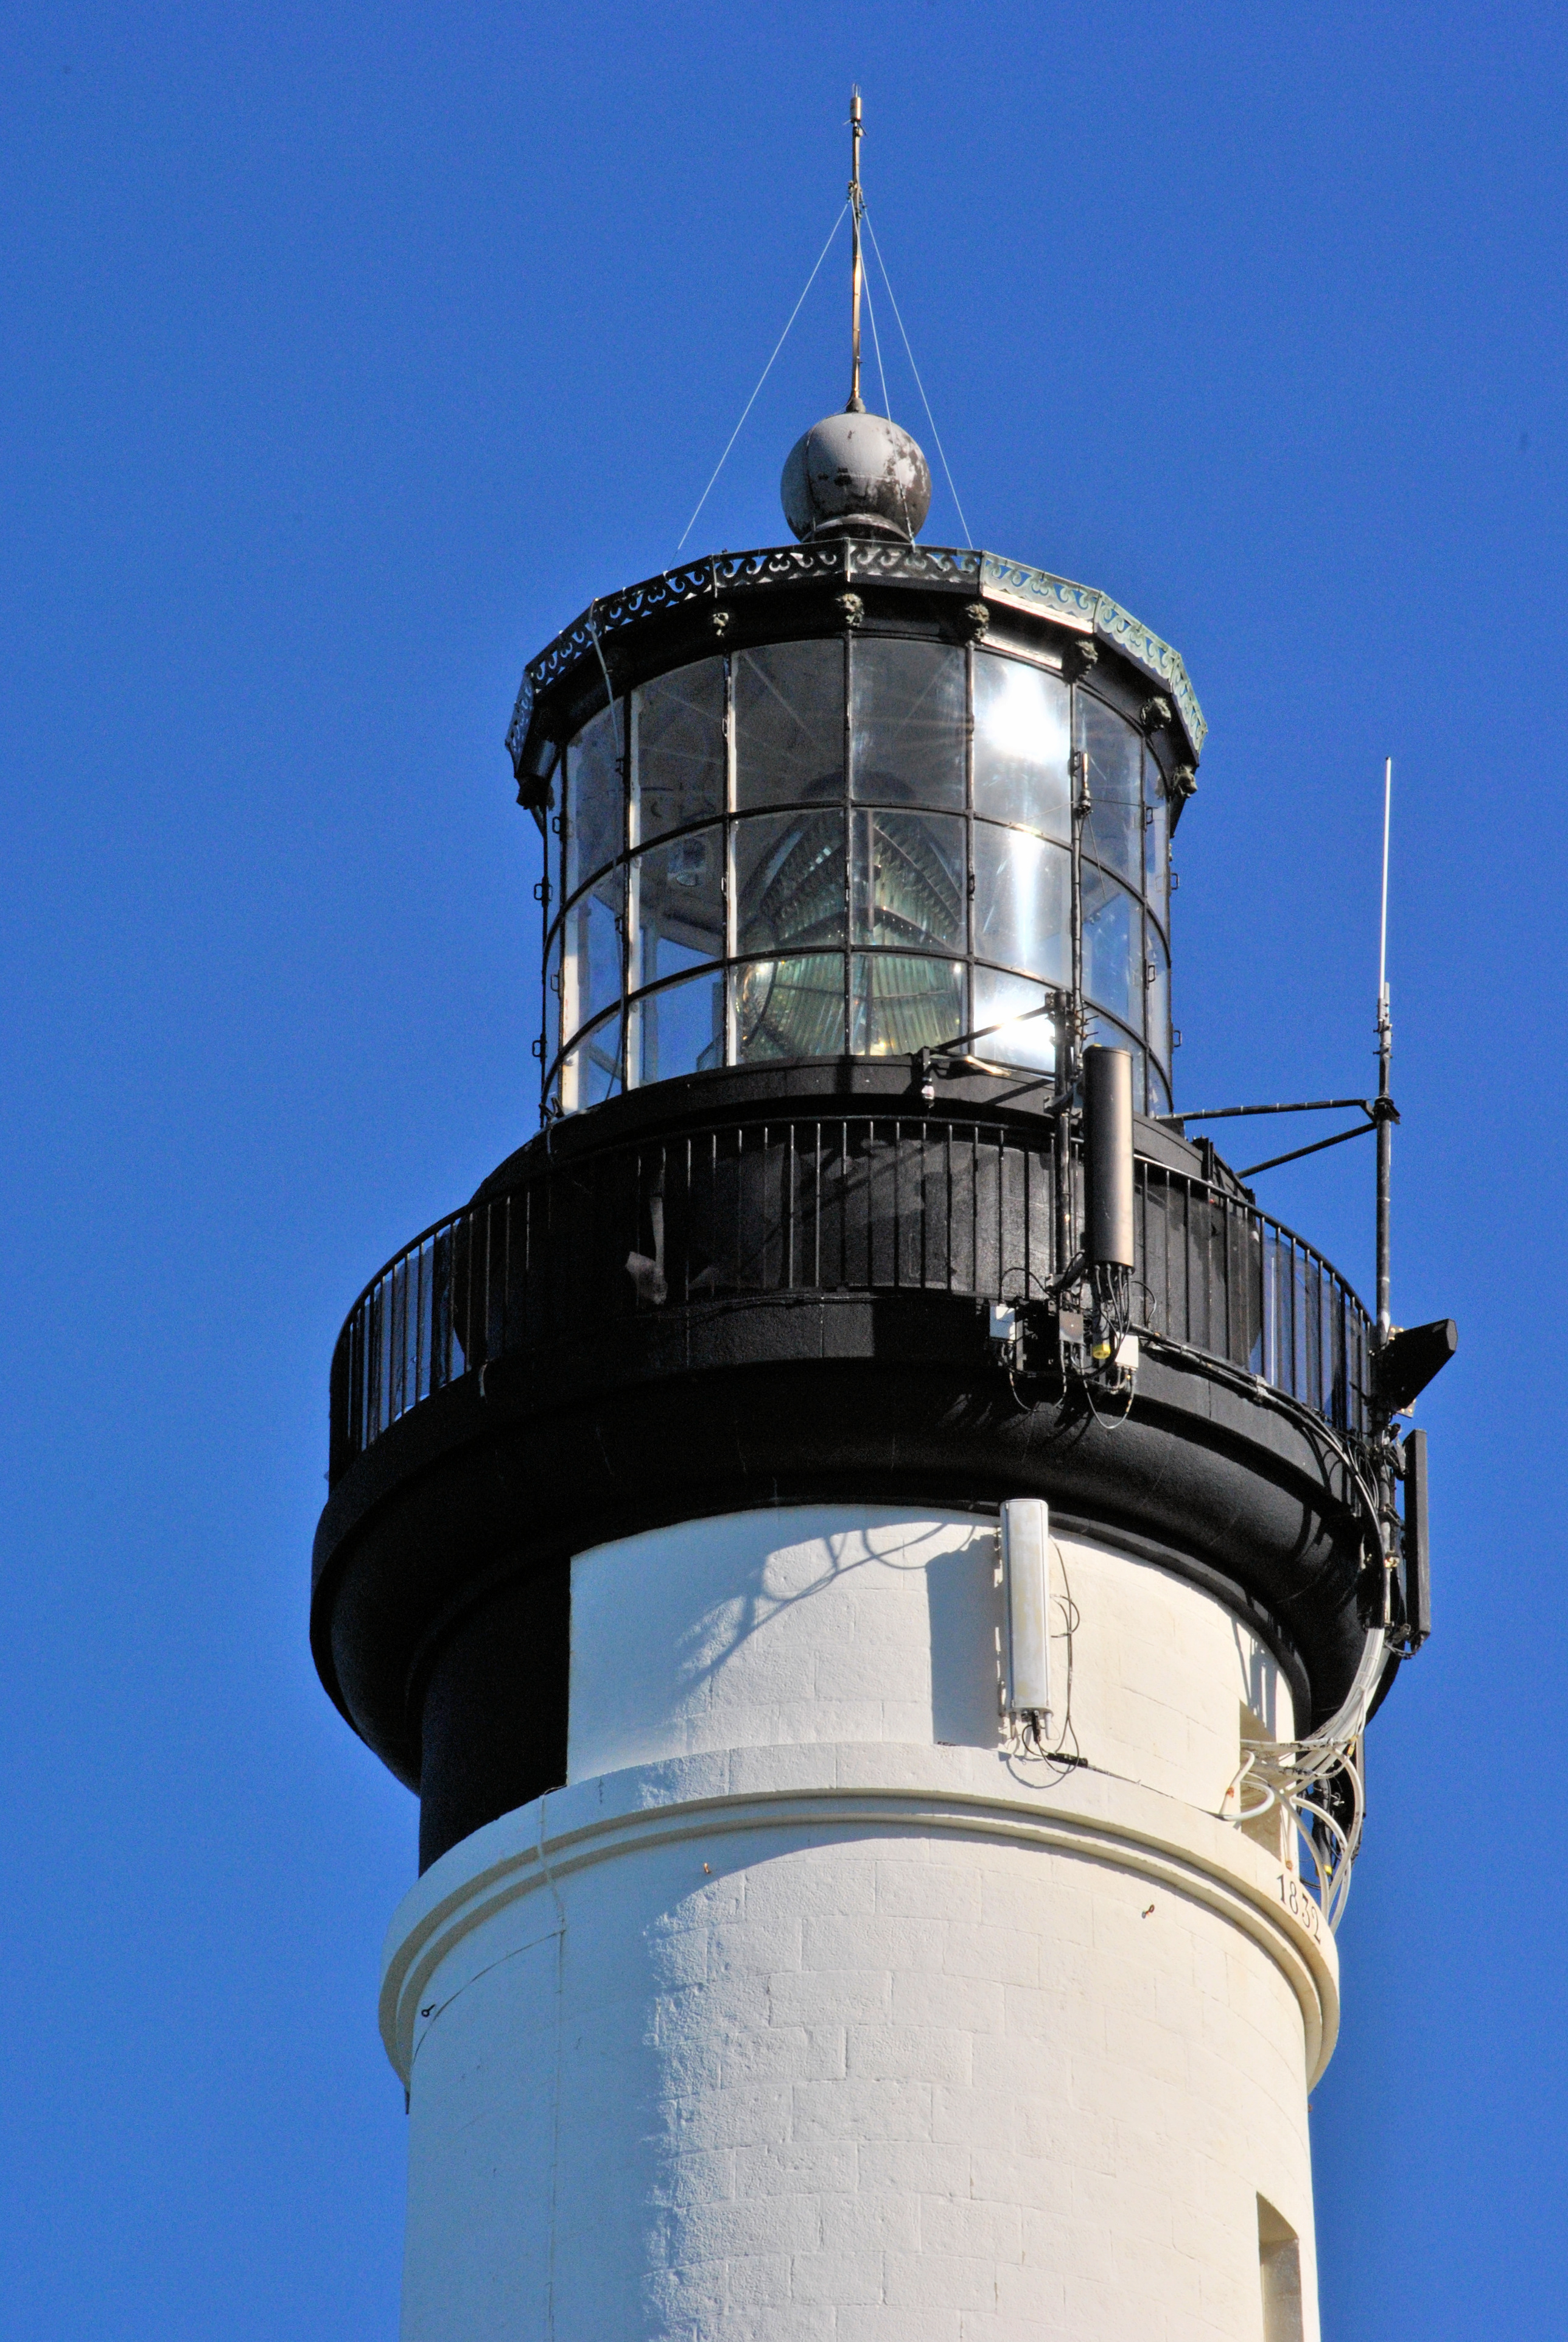 Lantern of the lighthouse of Biarritz